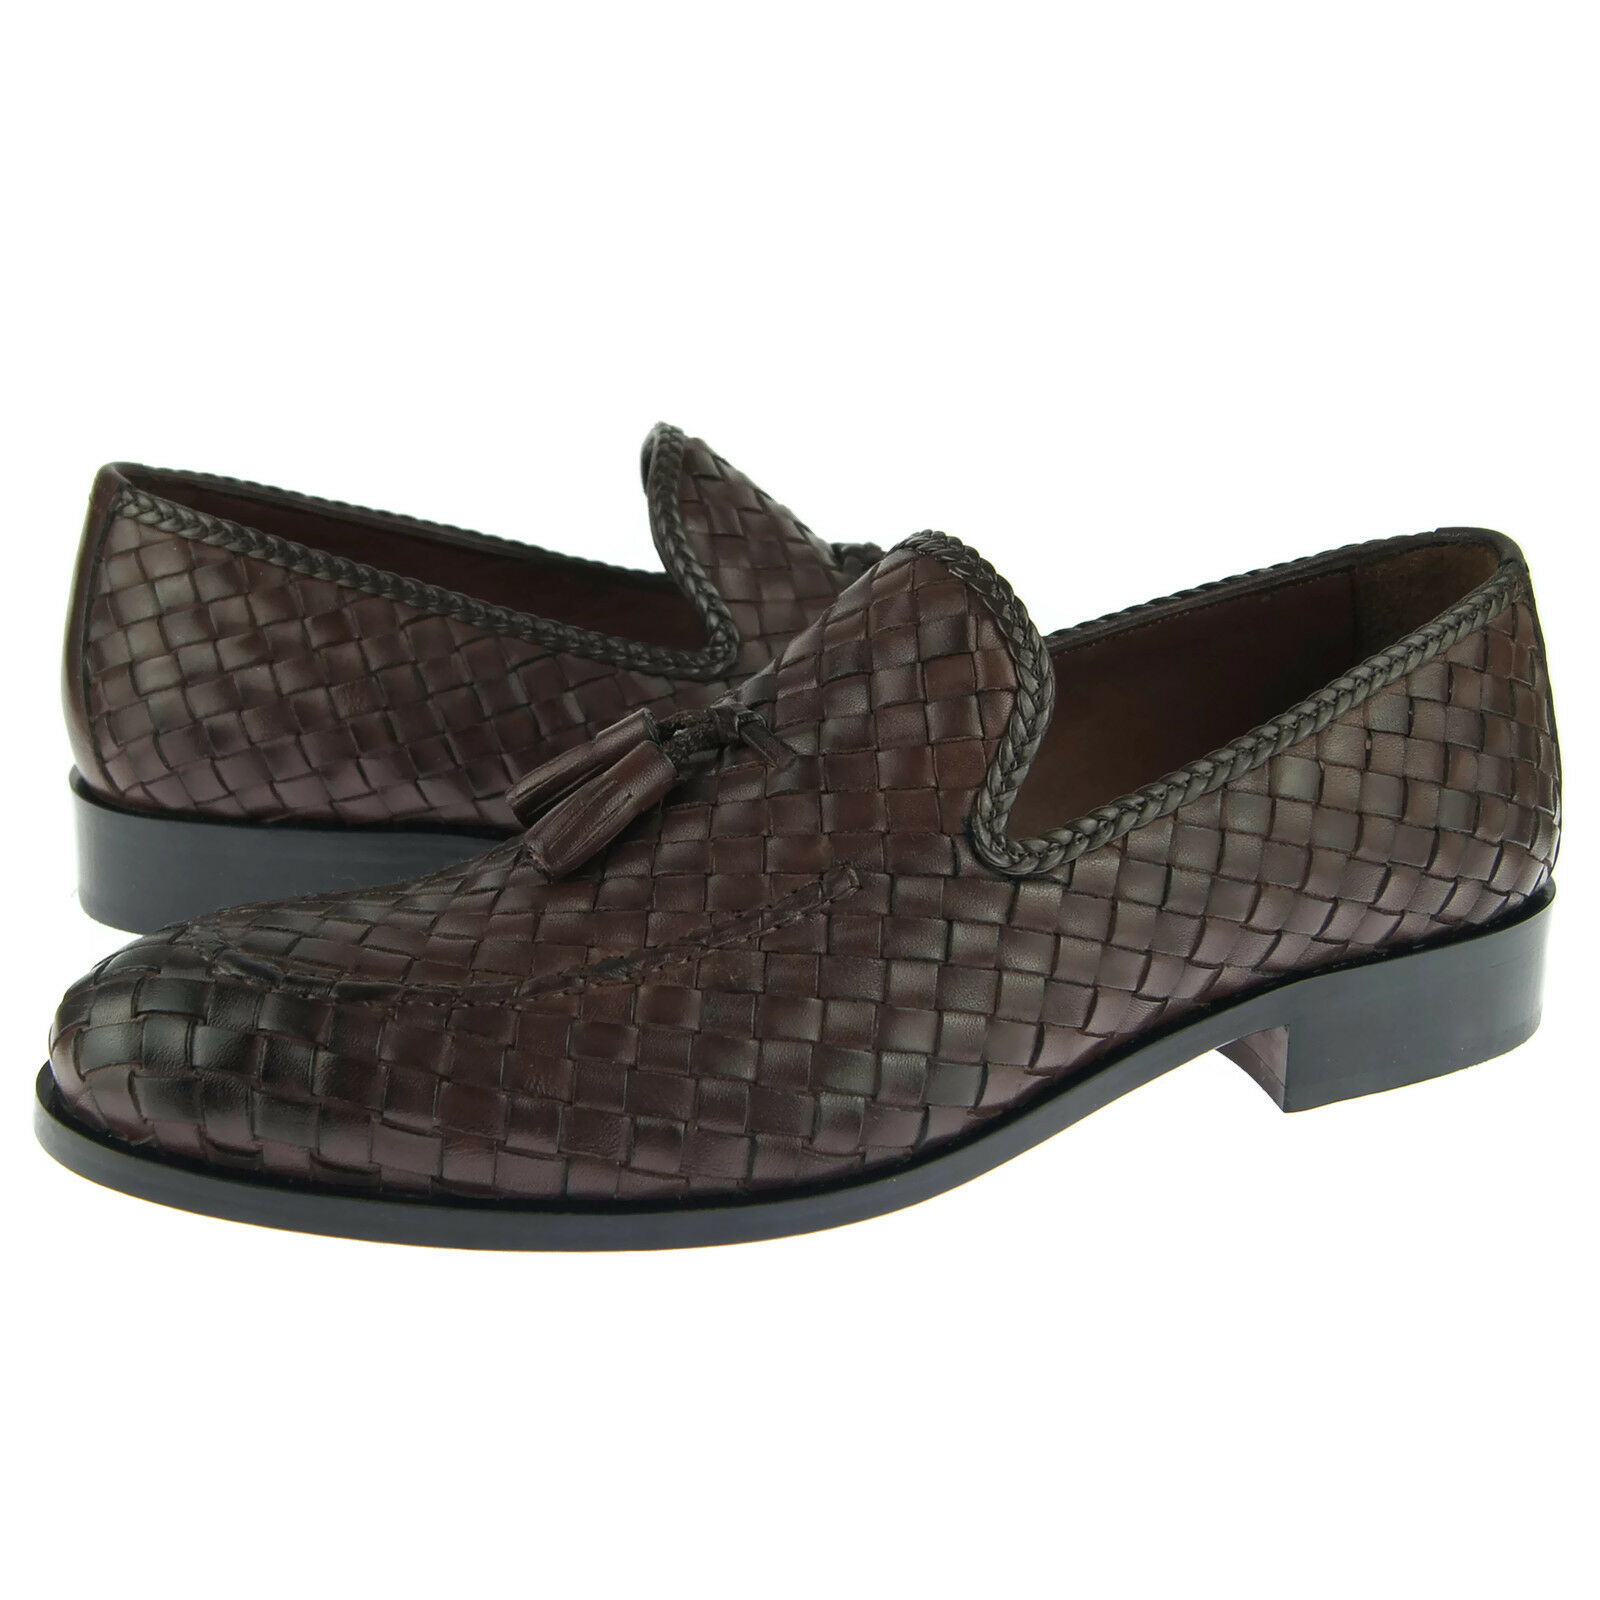 Alex D  Baltimore  Woven Tassel Loafer, Men's Dress Casual Leather shoes, Brown